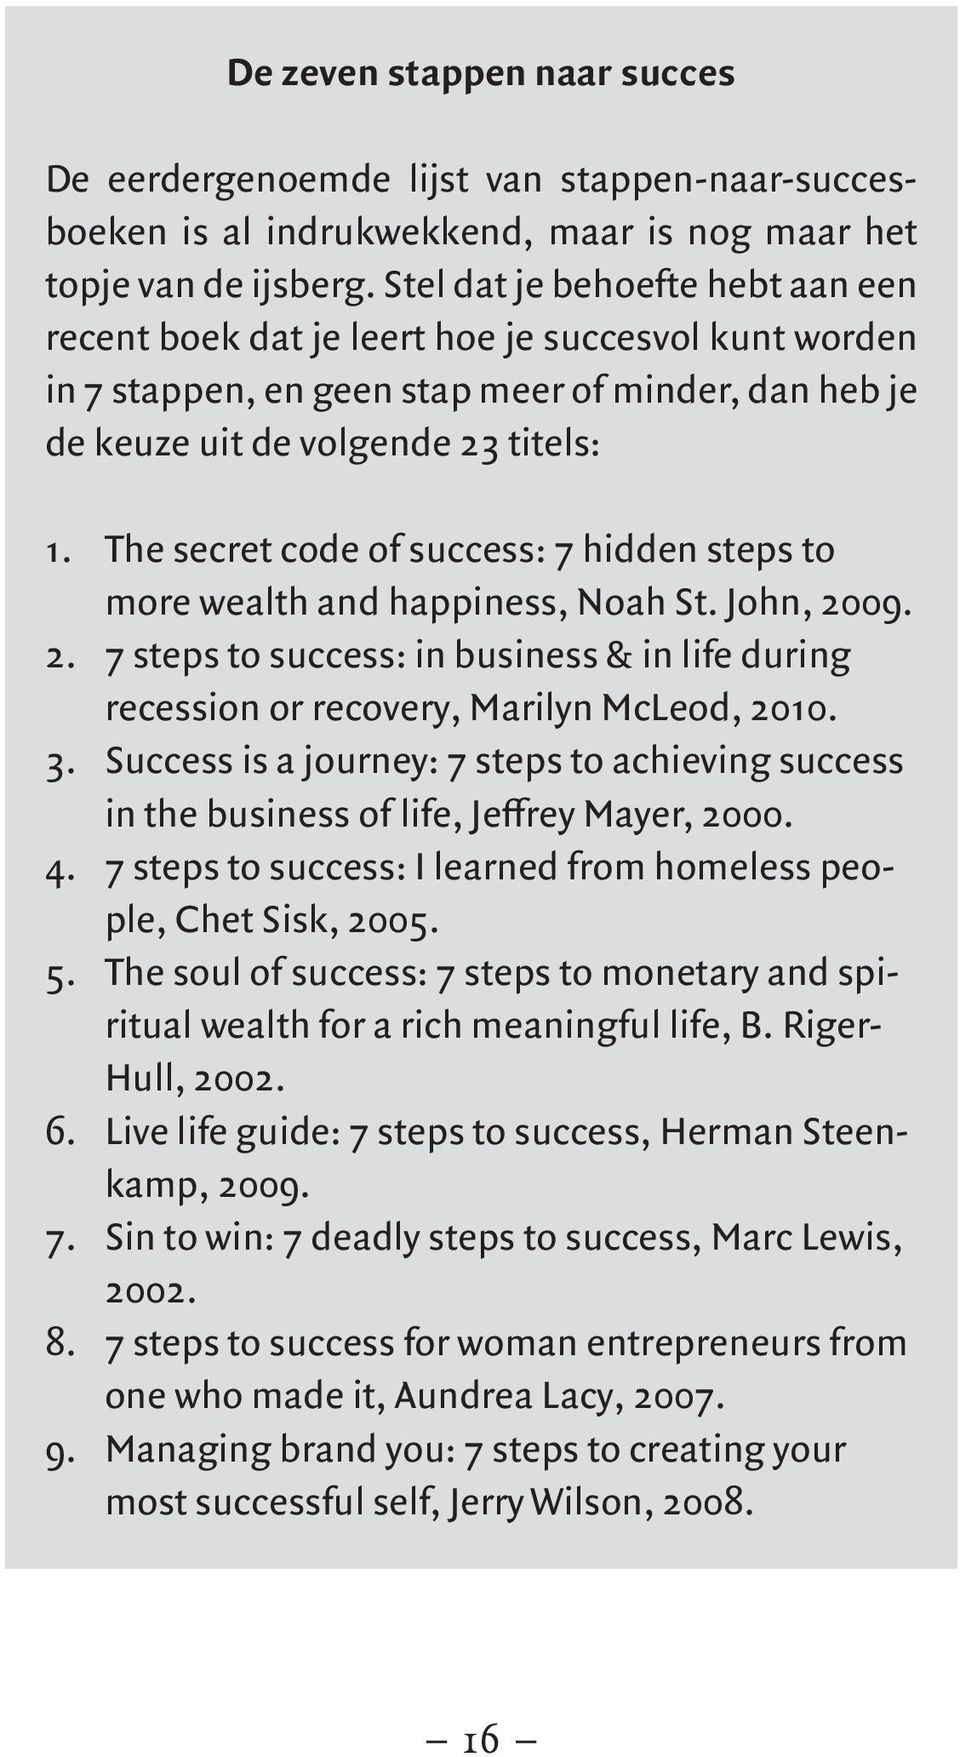 The secret code of success: 7 hidden steps to more wealth and happiness, Noah St. John, 2009. 2. 7 steps to success: in business & in life during recession or recovery, Marilyn McLeod, 2010. 3.